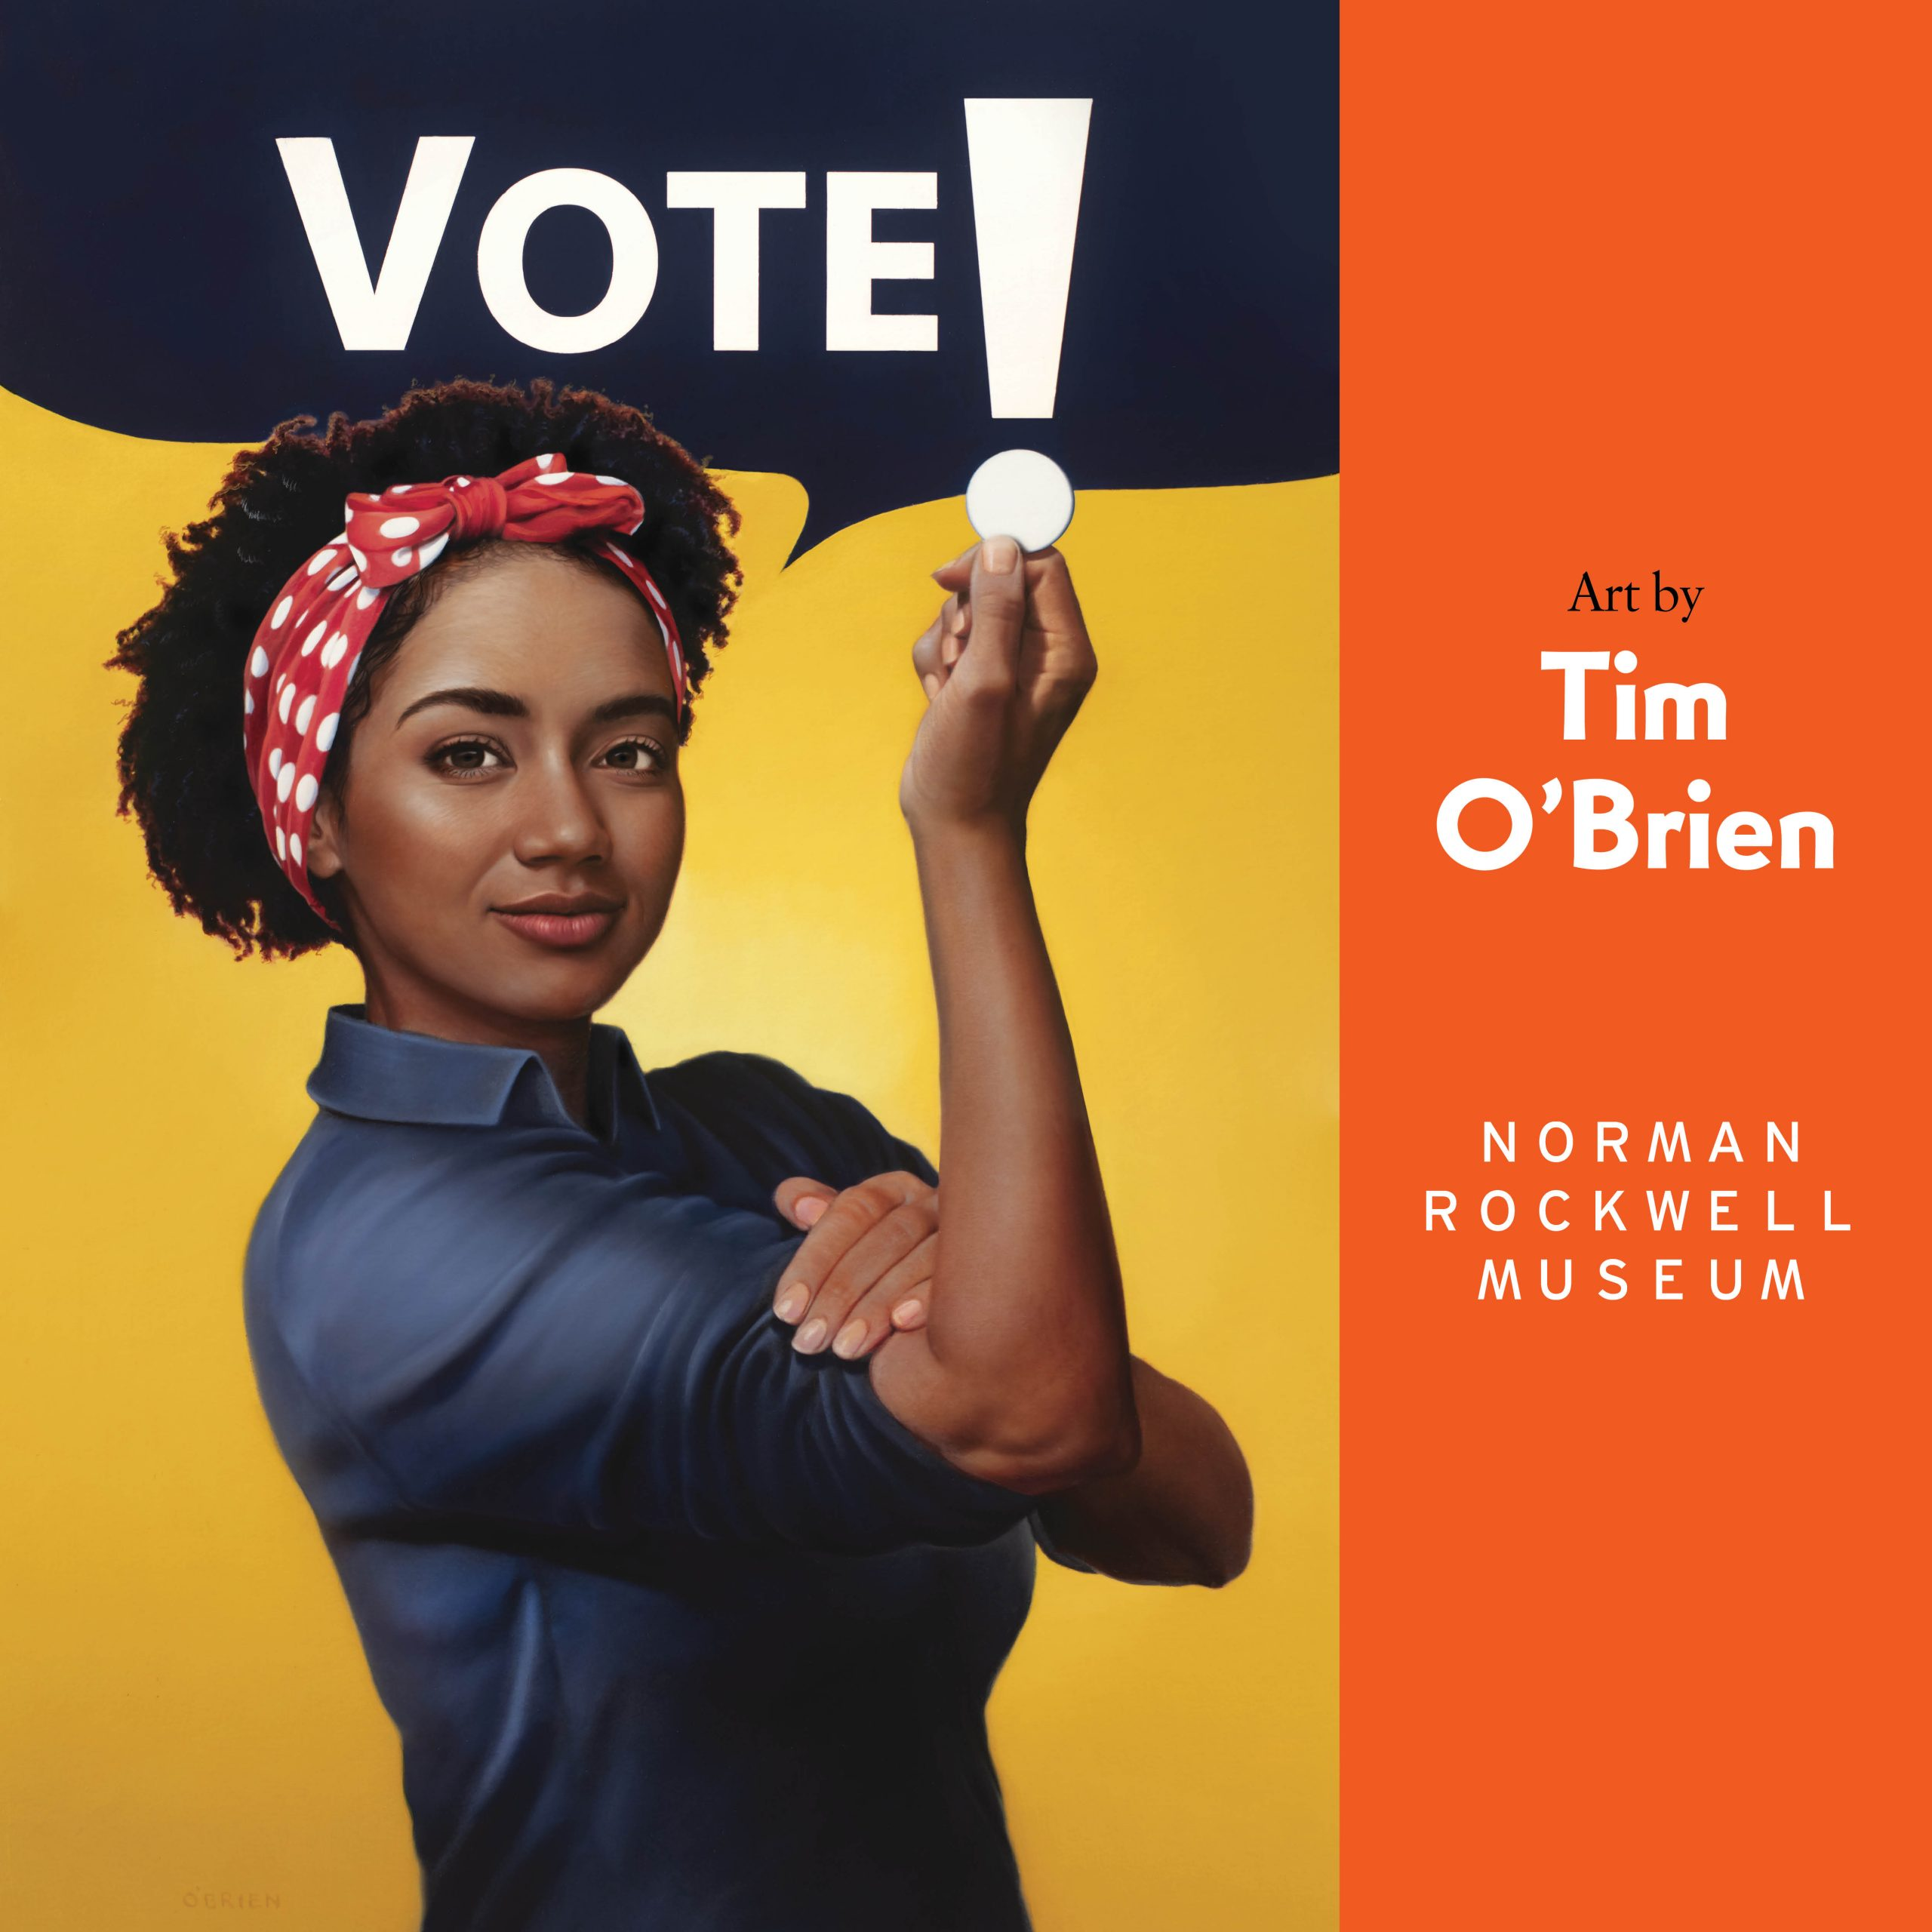 Tim O'Brien has participated in The Unity Project.